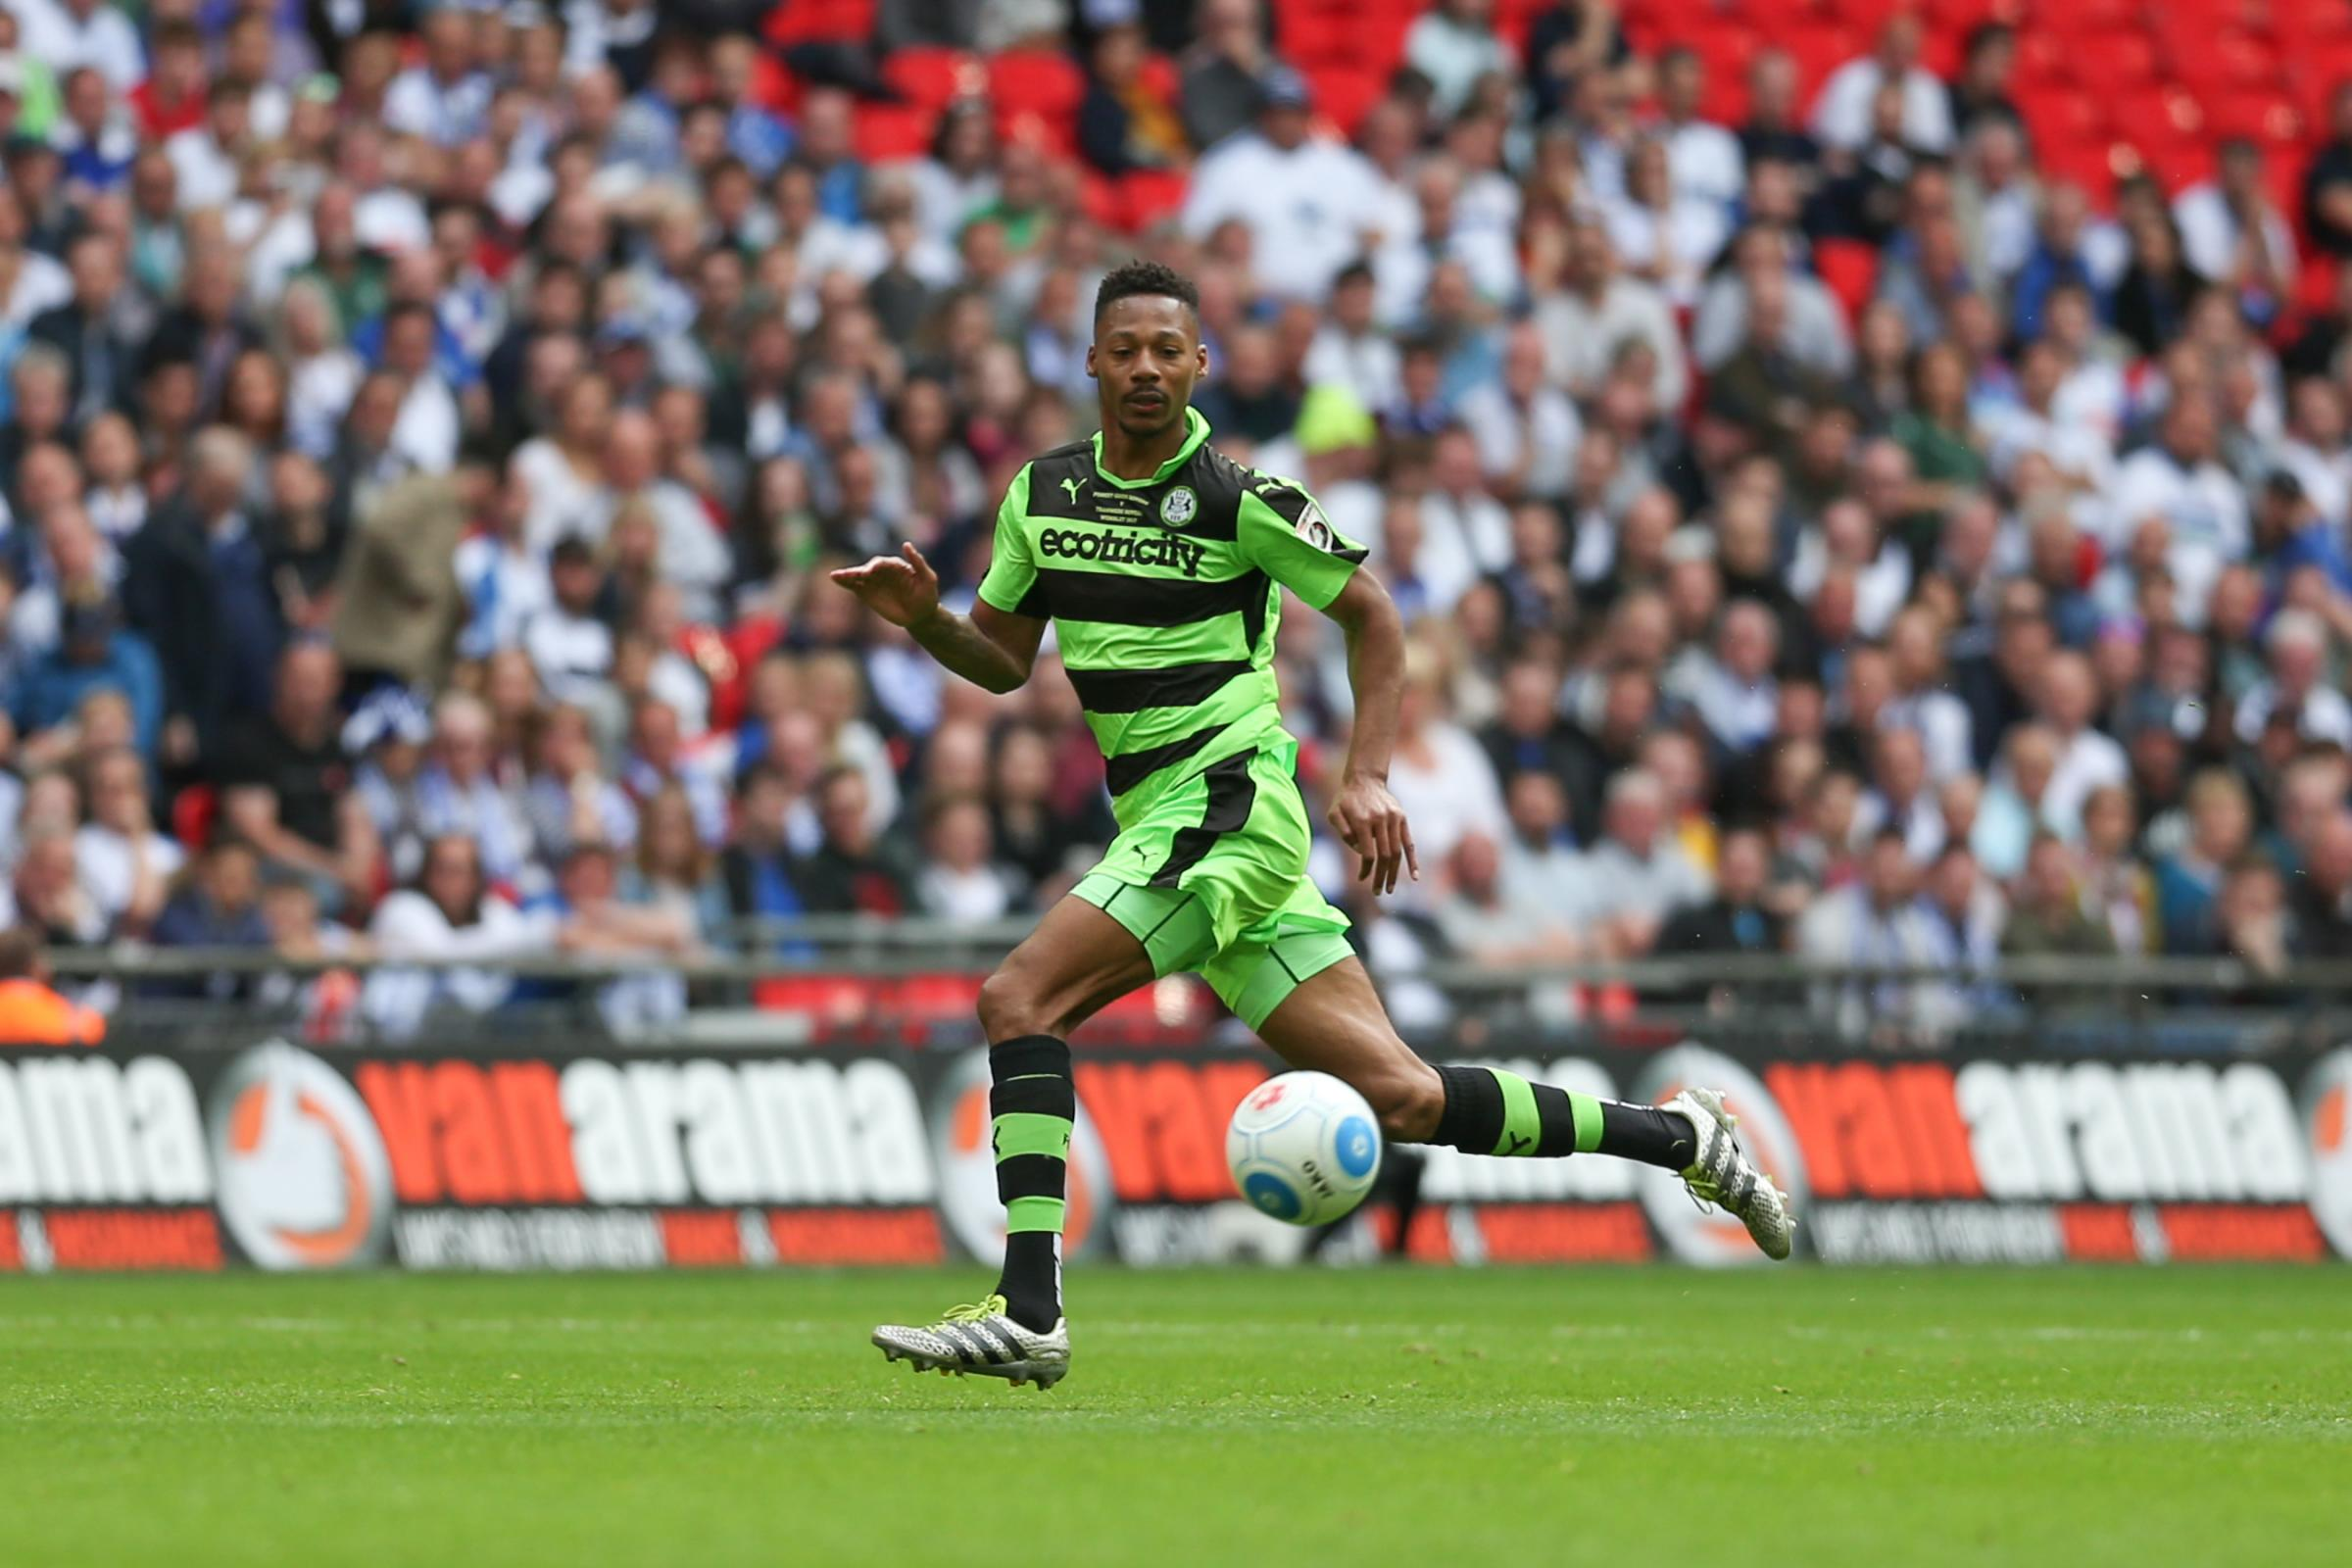 Former Forest Green defender Ethan Pinnock                                                                                Pic: Shane Healey/ Pro Sports